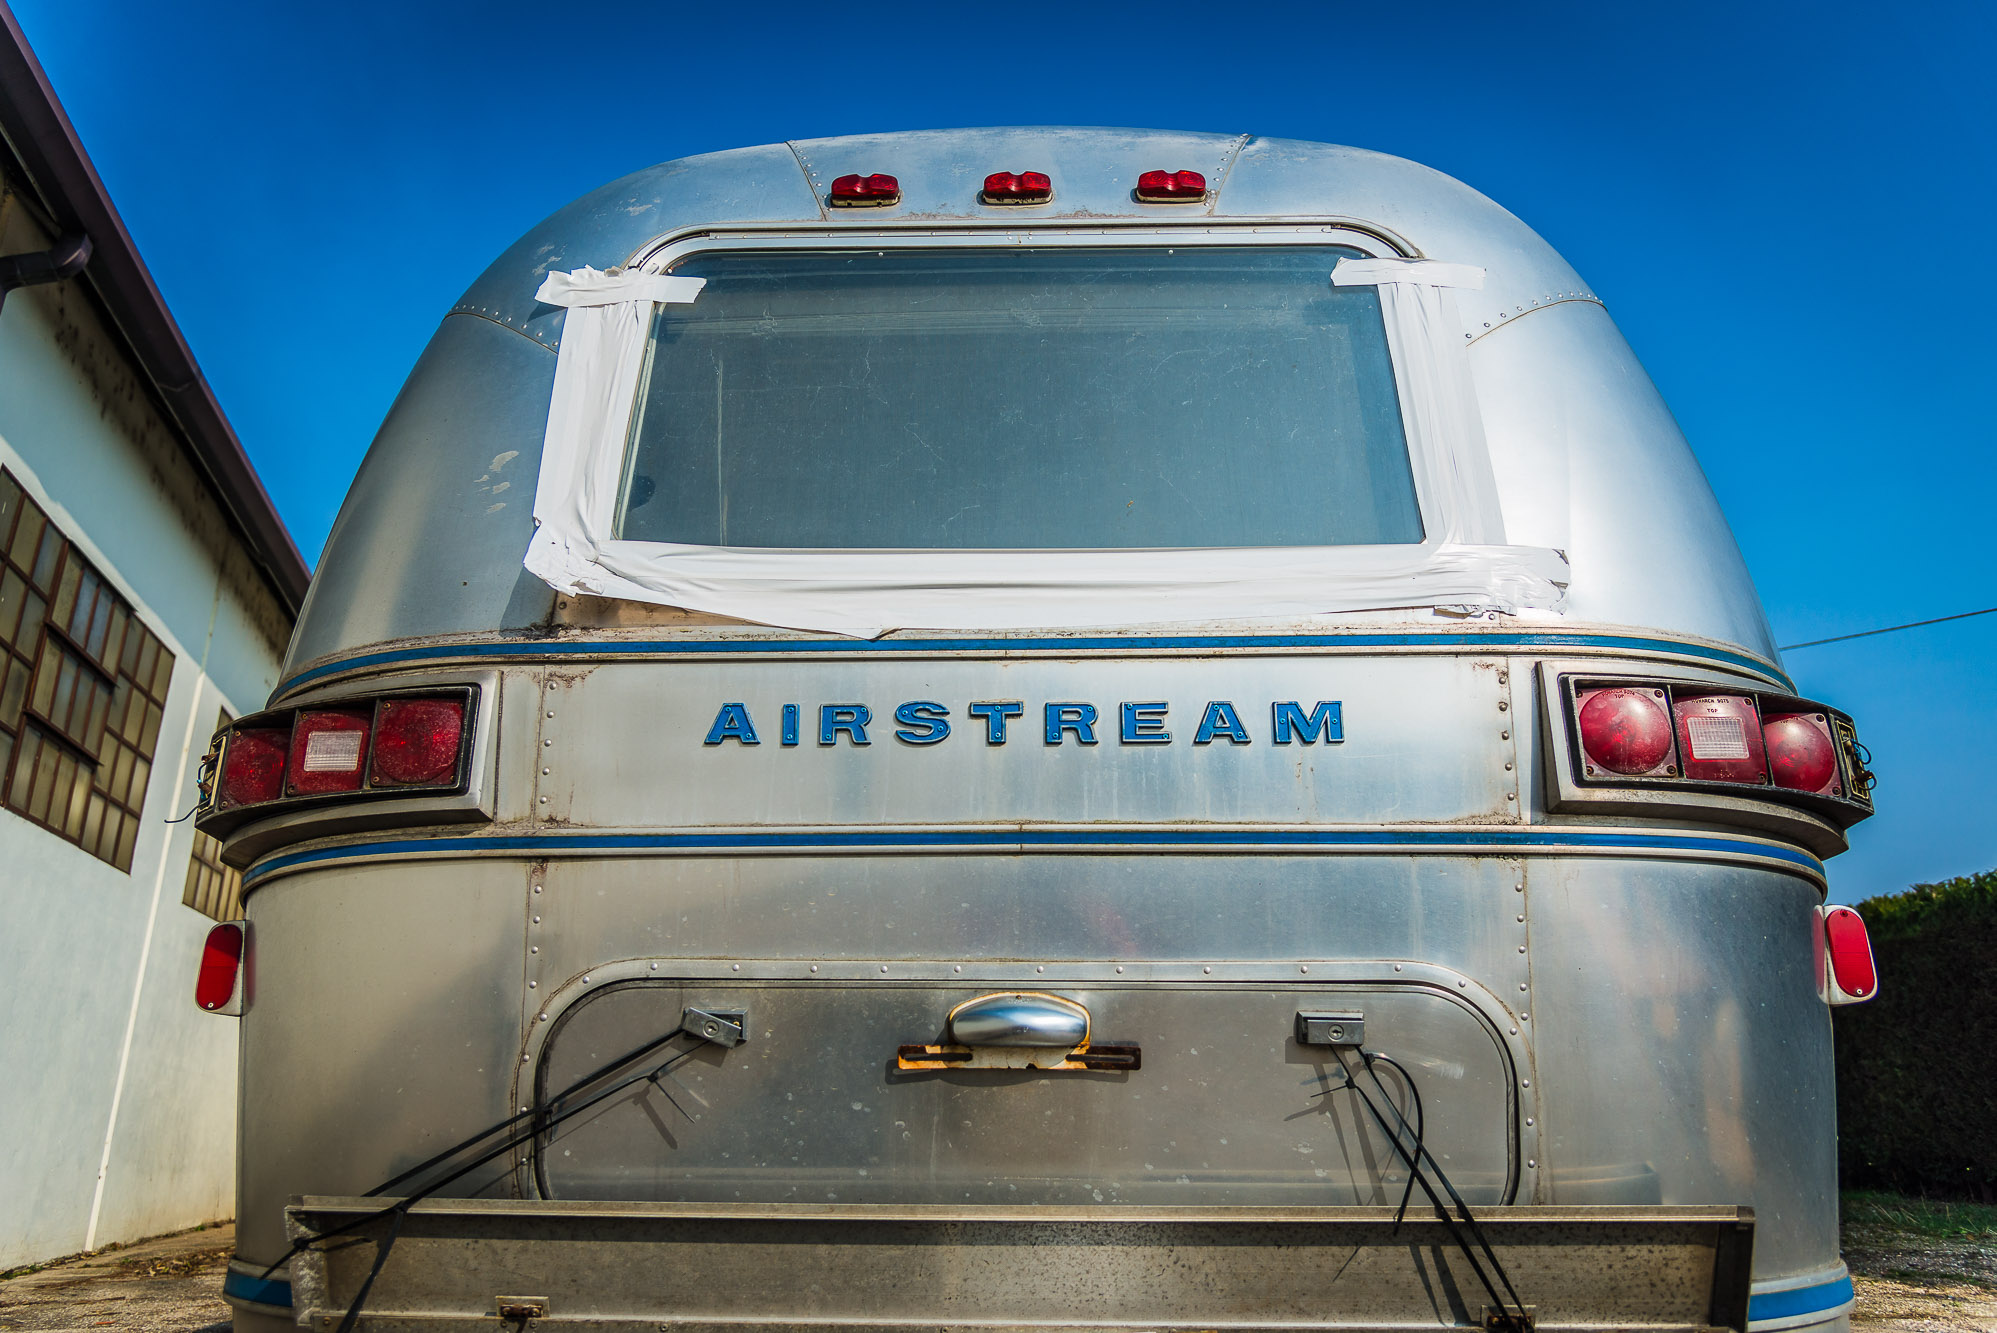 2020 Airstream 25 ft jpg -46